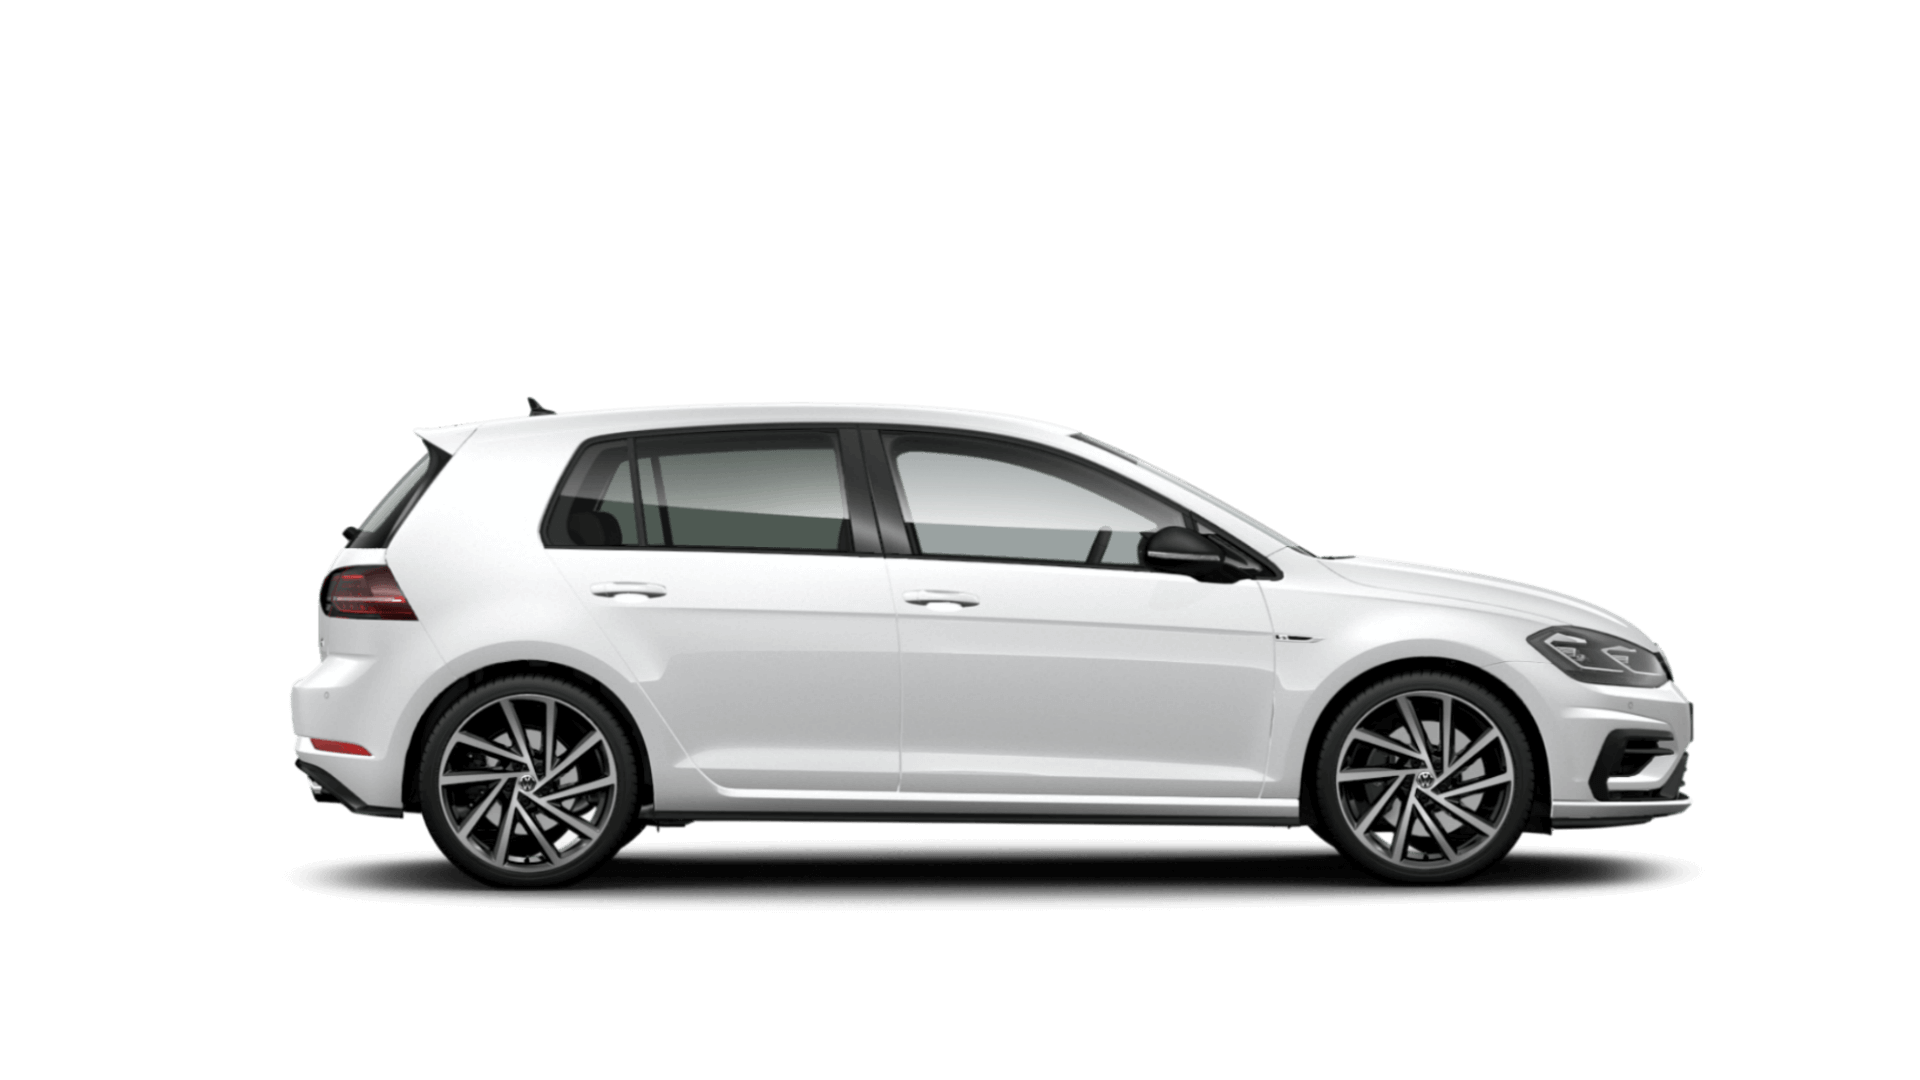 Golf R 7 Speed DSG R